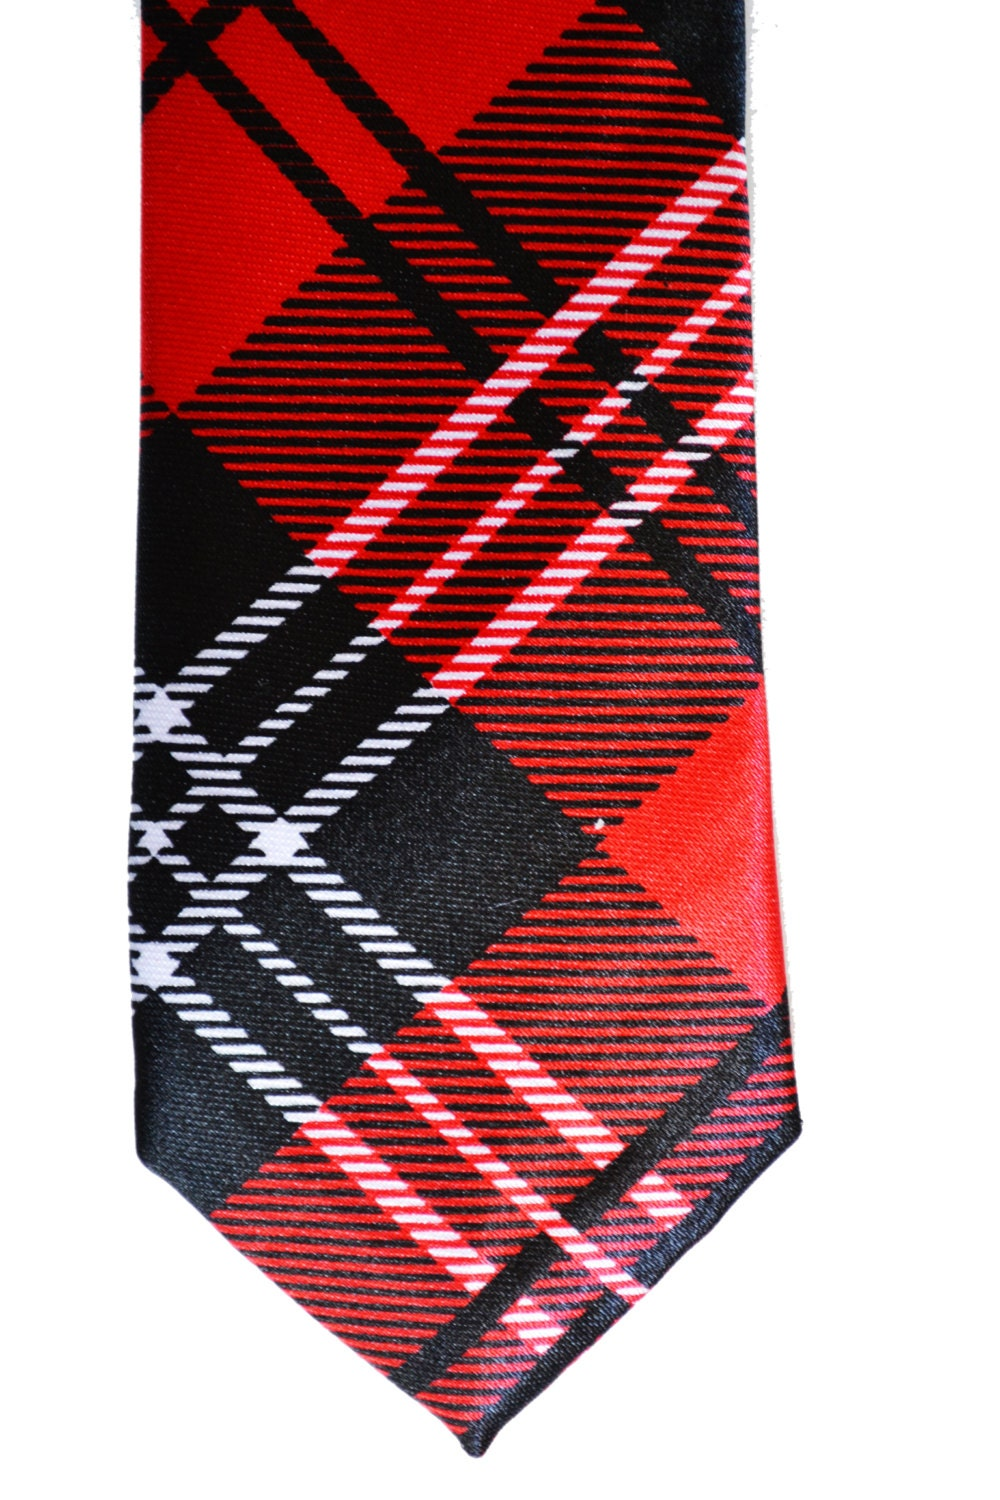 Popular Stylish Mens Tie Red and Black Modern Tartan Pattern Skinny Necktie - TiestheKnot